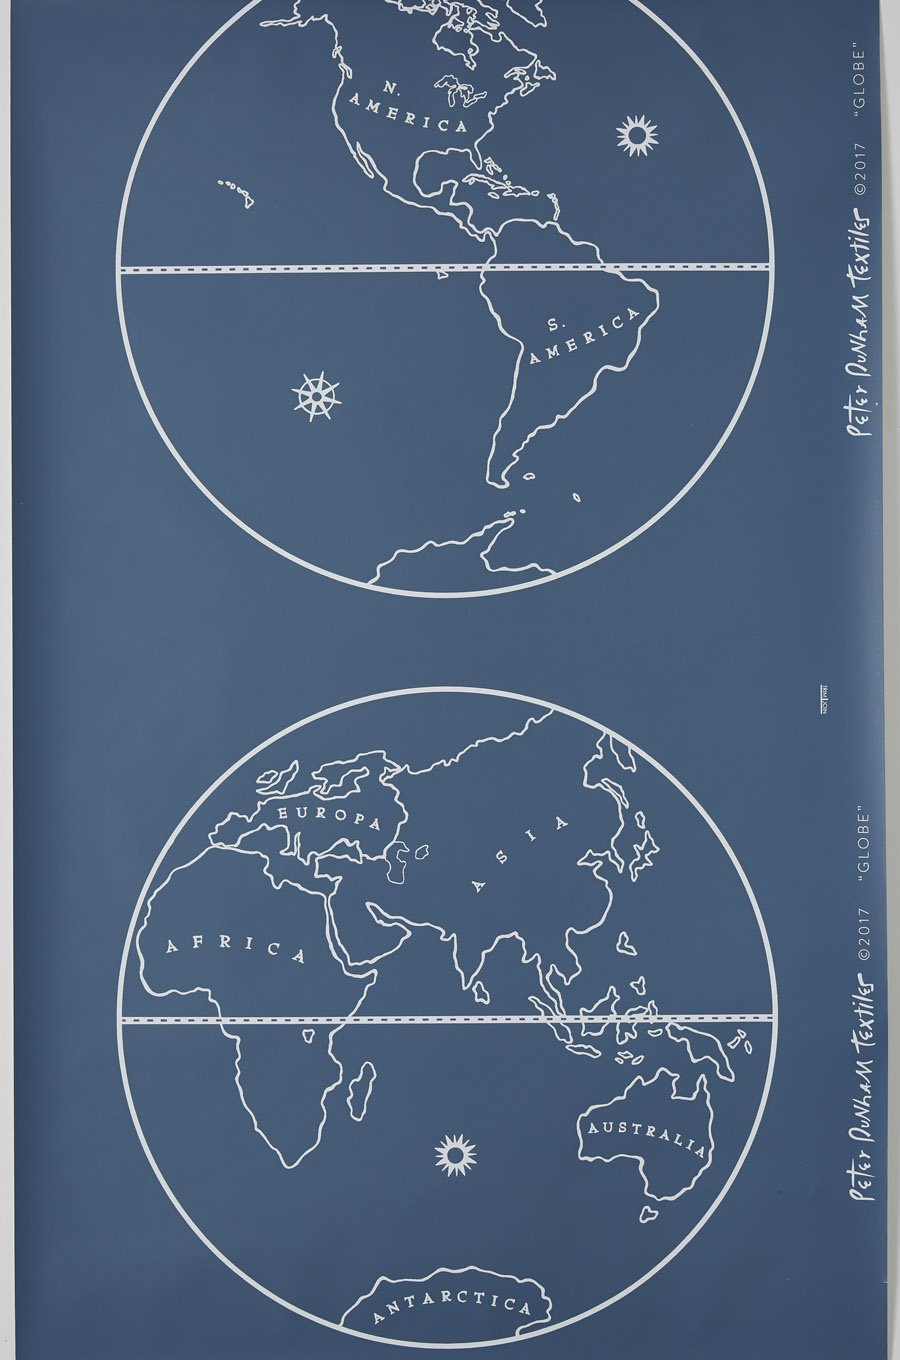 Globe - White on Indigo